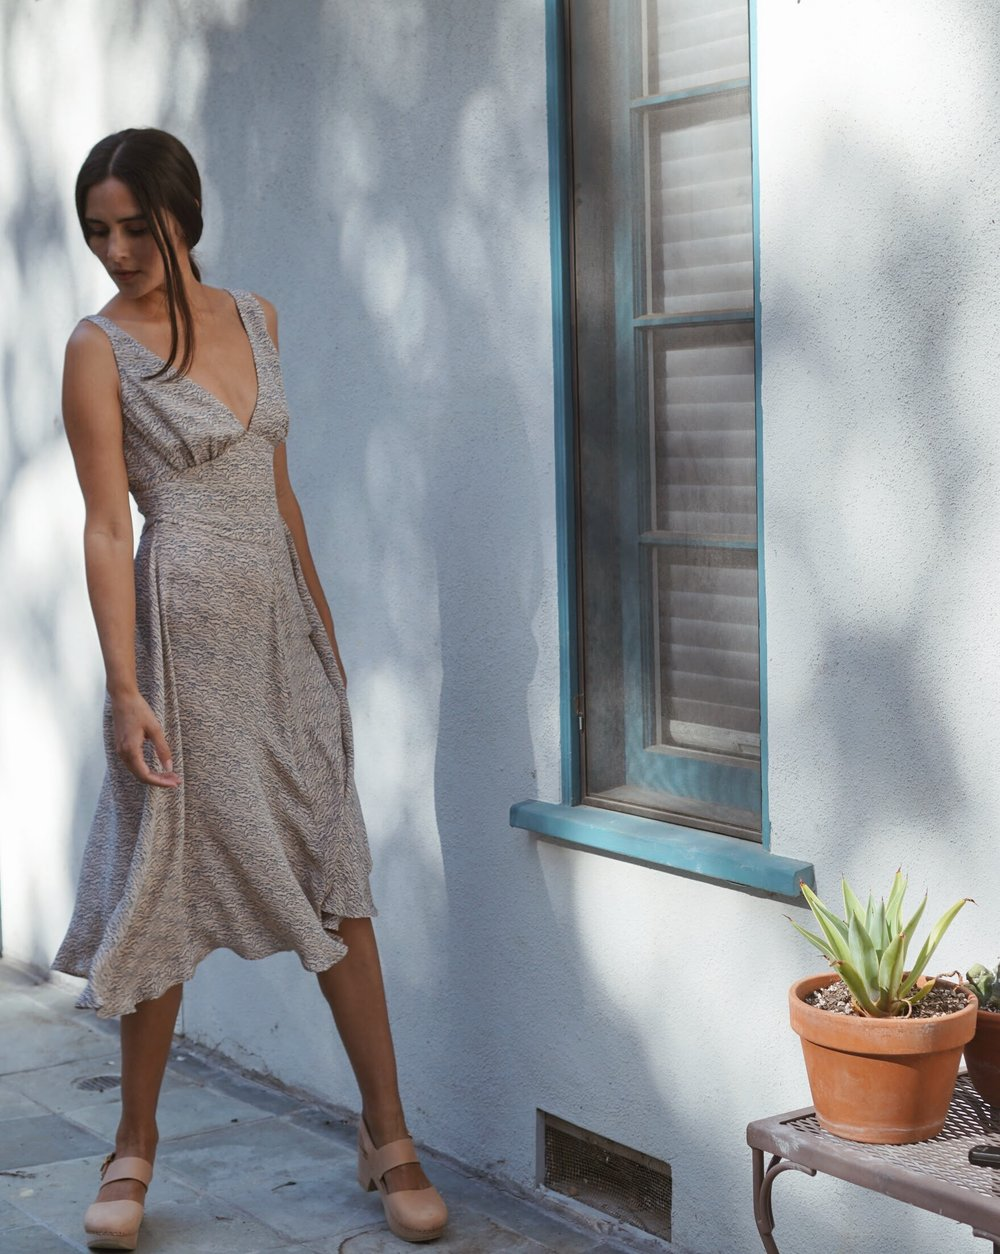 Olga Kapustina  Silk Georgette Slip dress in Print +   Zuzii   Closed Toe Clogs in Natural.